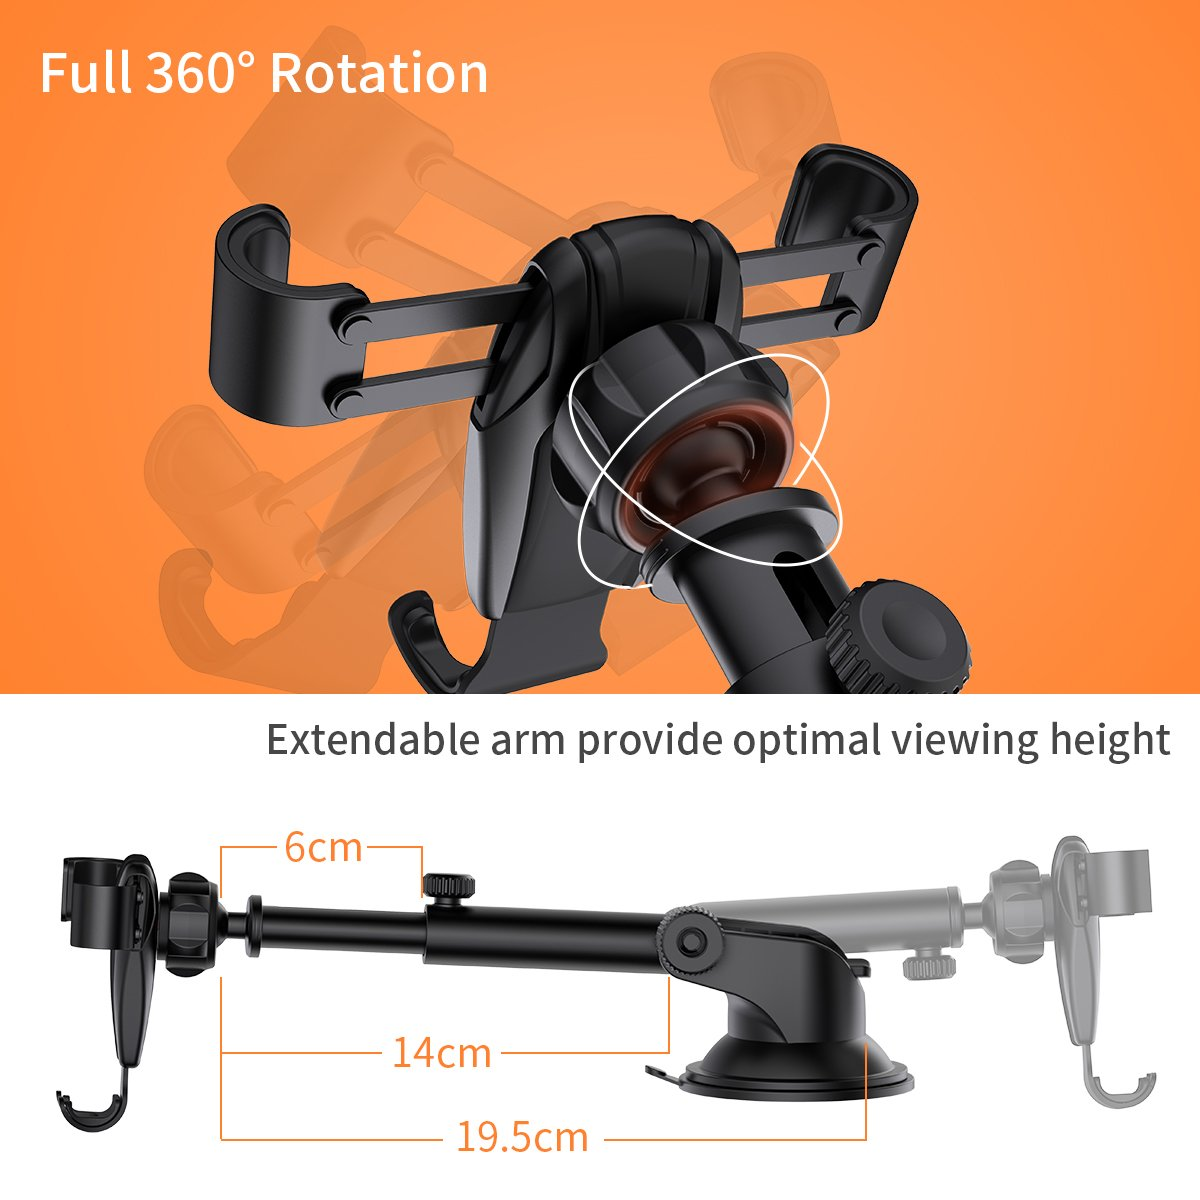 Cell Phone Holder Car, Universal Dashboard Cell Phone Holder Gravity Auto-Clamping Car Cradle Mount Adjustable Car Holder Phone X/ 8/7/ 6s/ Plus, Galaxy S9/ S8/ S7 Edge - Ainope by Ainope (Image #6)